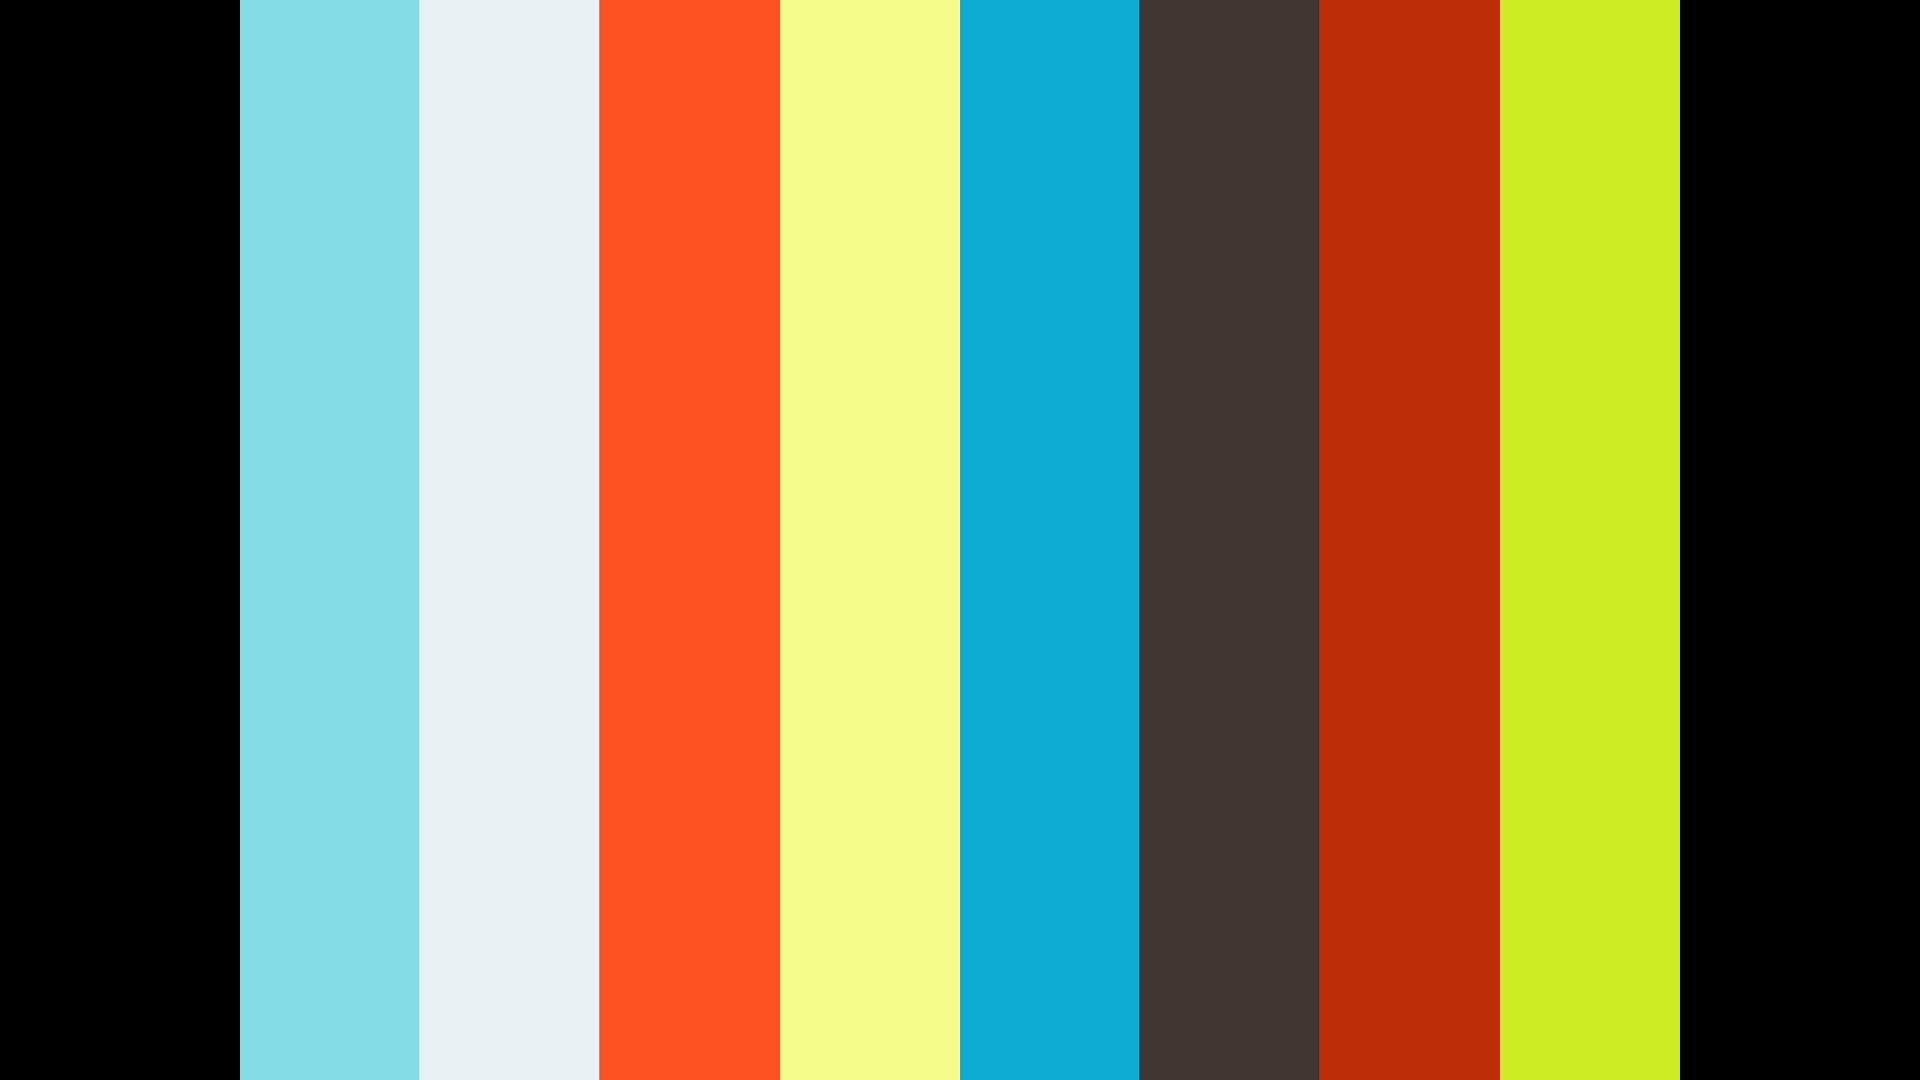 JCAP Treatment Overview's and Neurologist's  Observations of AE, Post-Strep